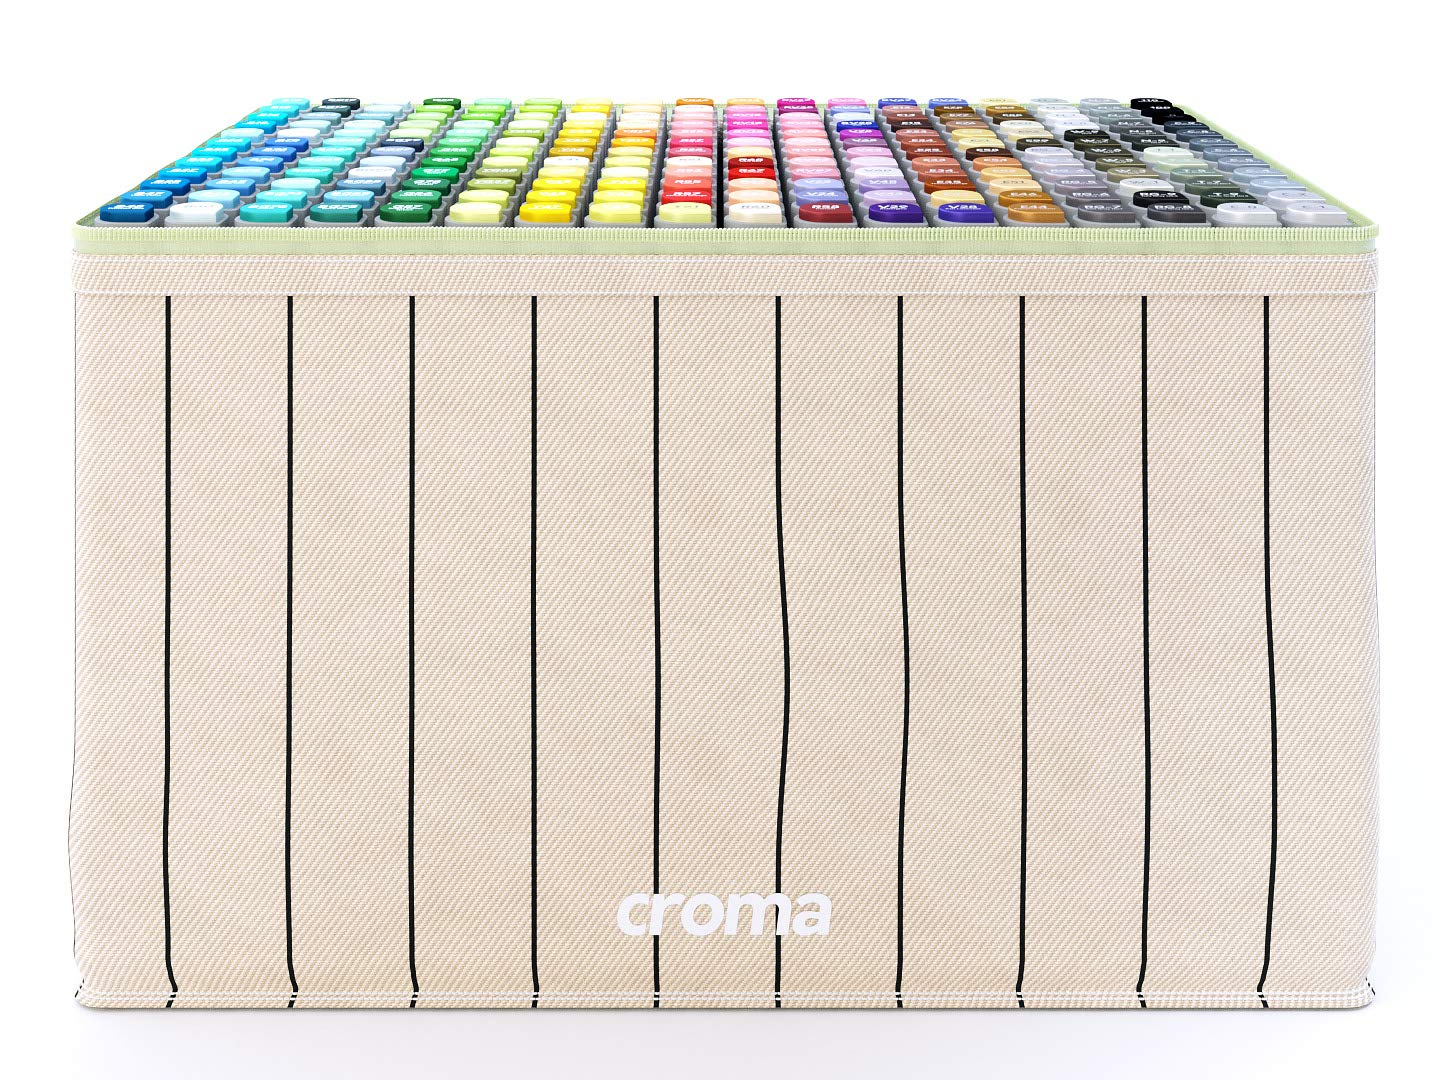 Croma Lite Brush Dual Tip Alcohol Based Sketch Markers, 216 Full Set, for Coloring Manga, Comic, Illustrations, Art, Industrial Design, Professional Artists, with Cotton Canvas Bag